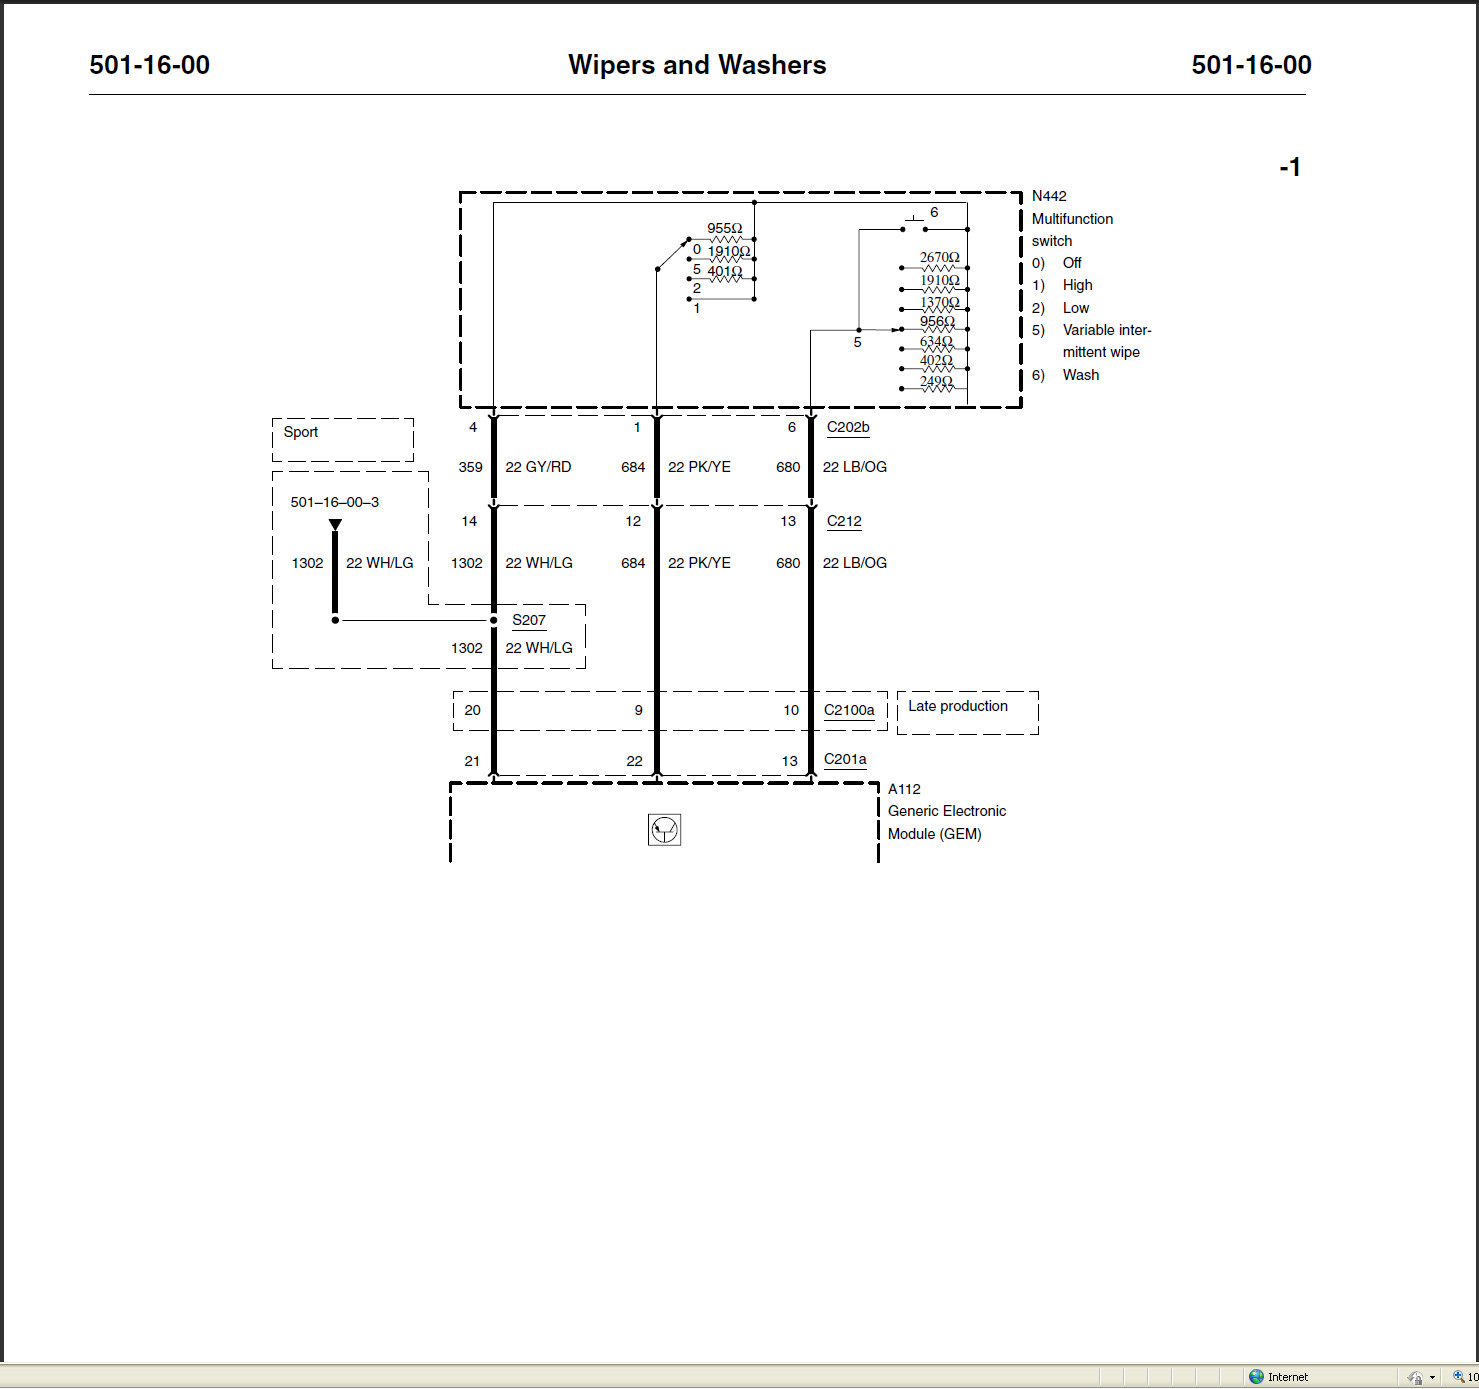 Ford Focus Wiper Motor Wiring Diagram: I Have A 2001 Ford Sport Trac 2 Wheel Drive. The Wipers